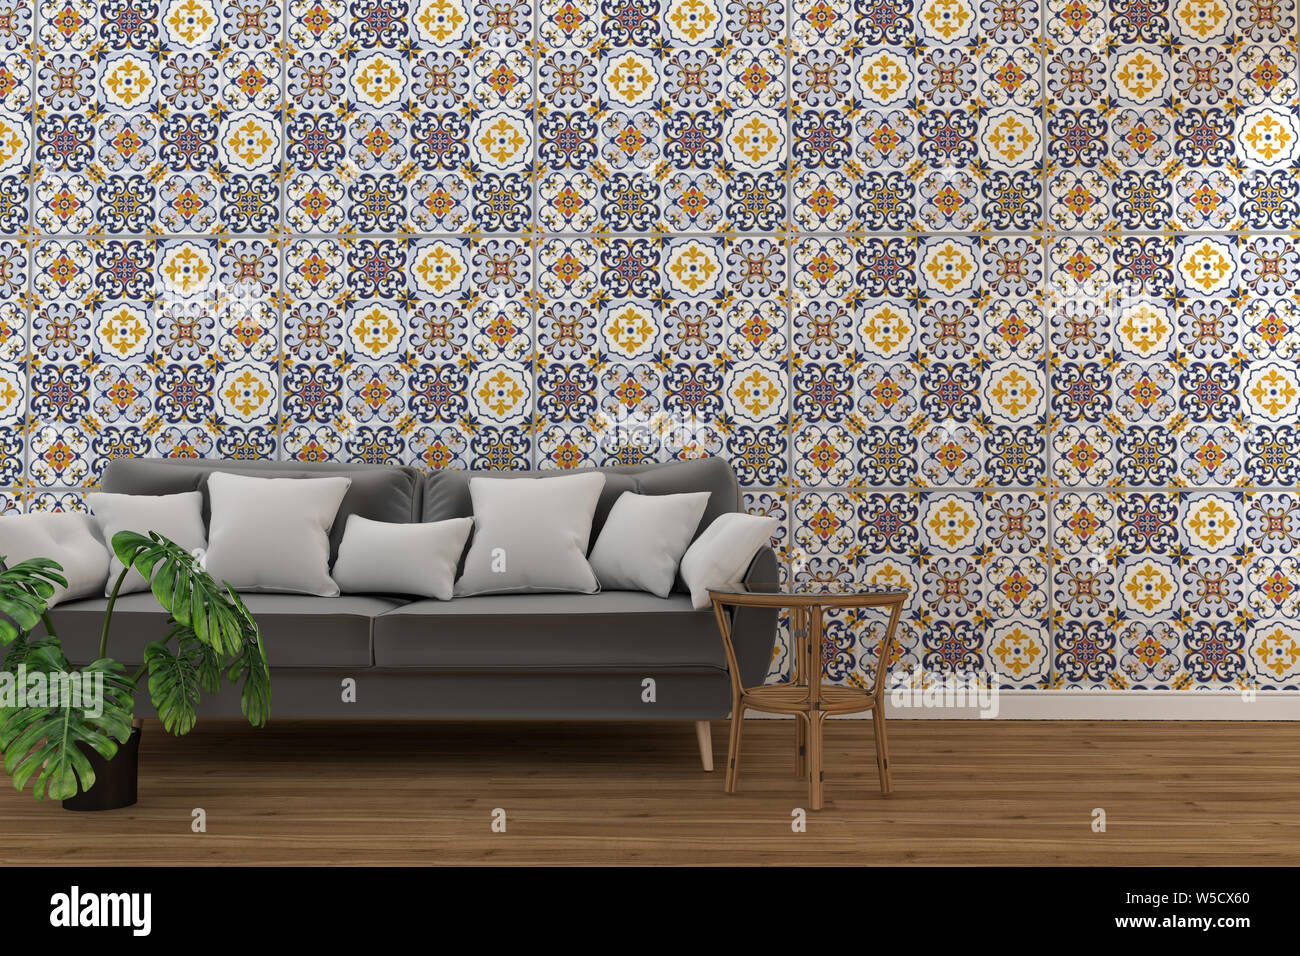 Modern Wall Texture Designs High Resolution Stock Photography And Images Alamy